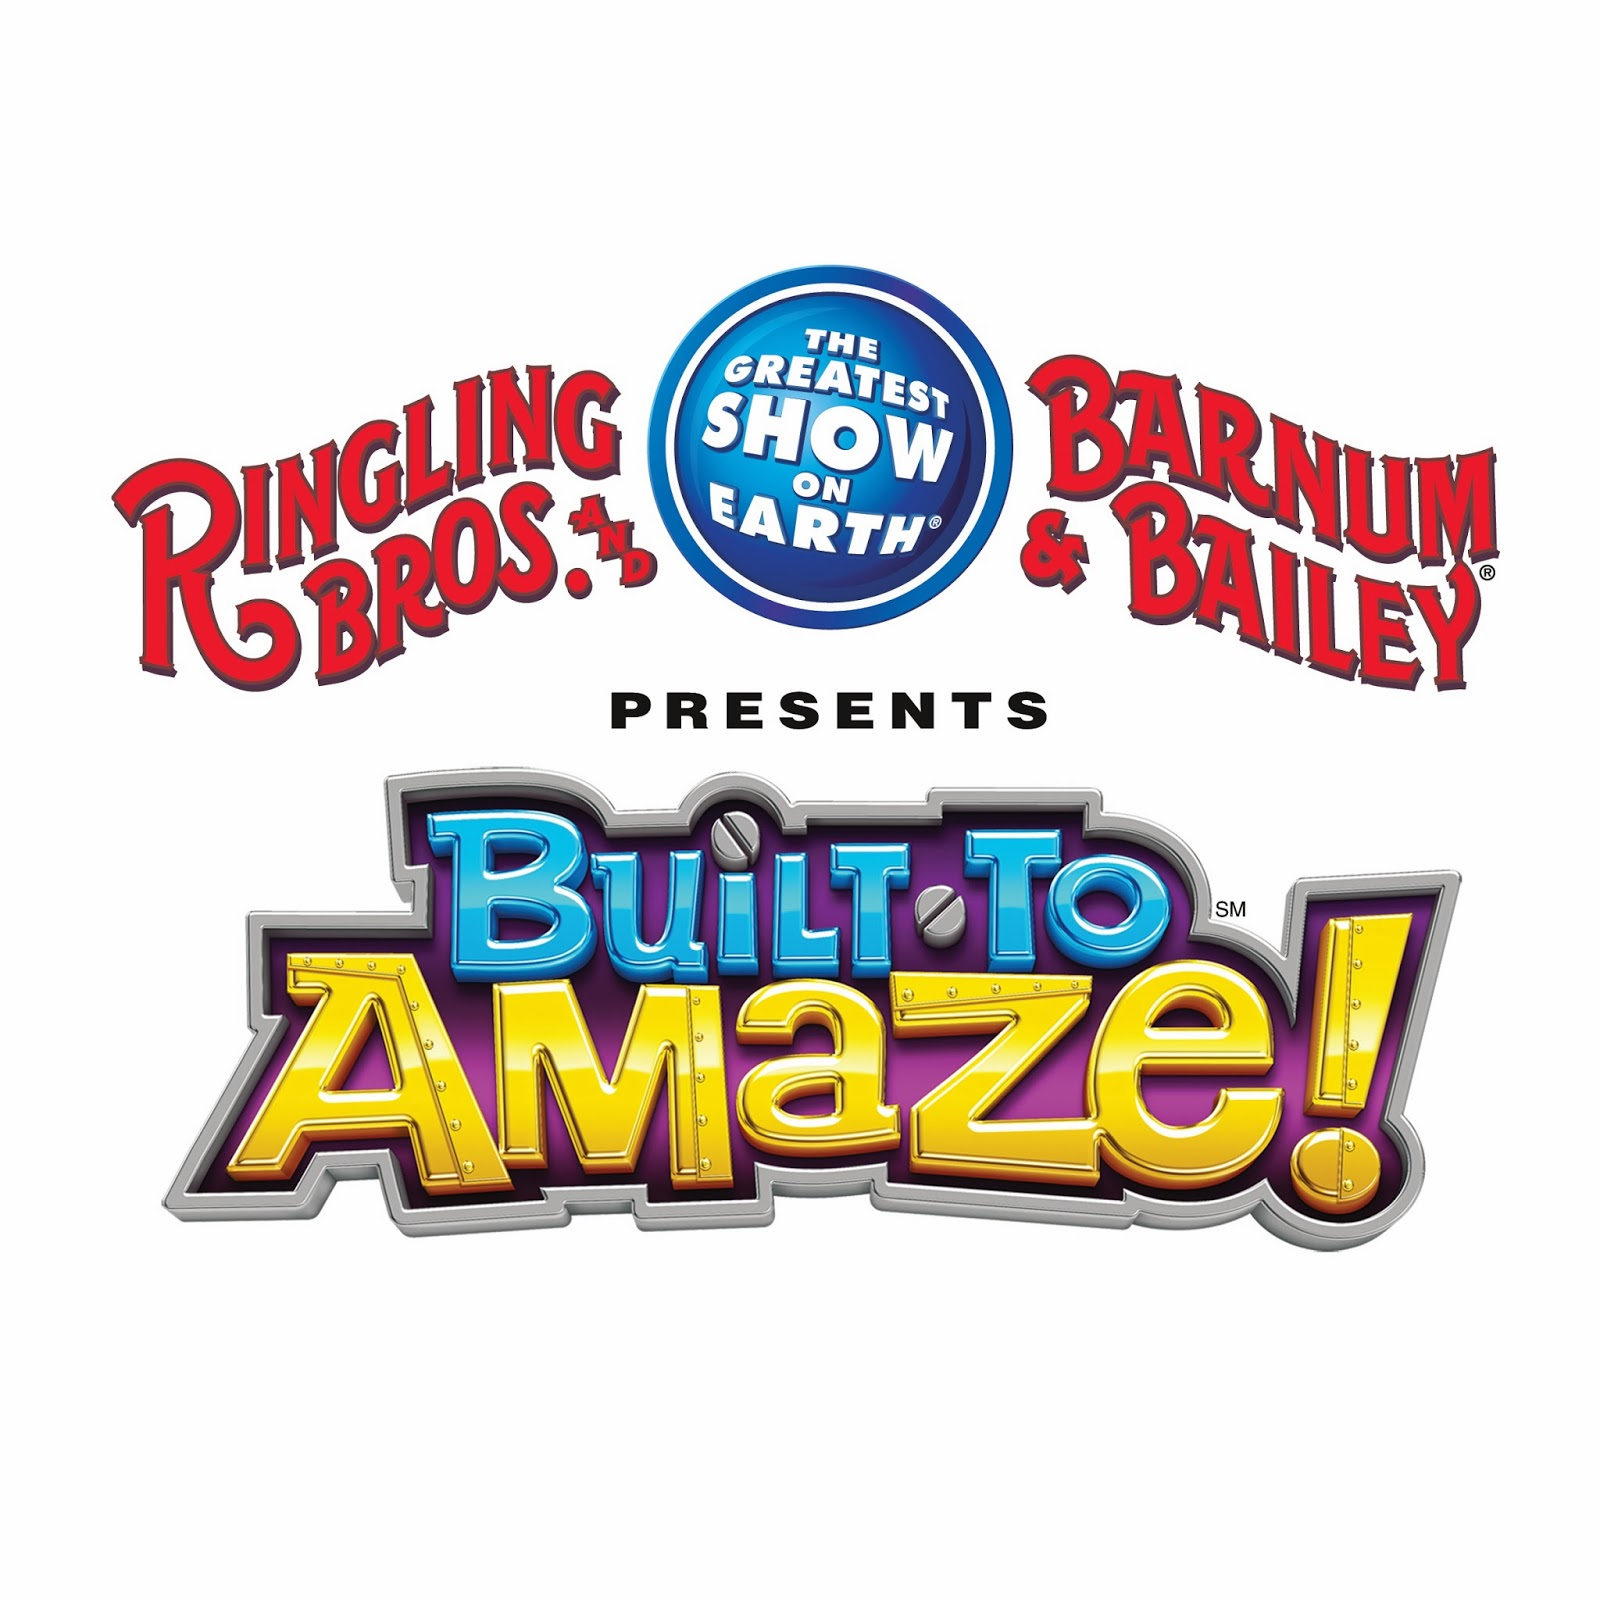 Ringling Bros. and Barnum & Bailey Built to Amaze logo